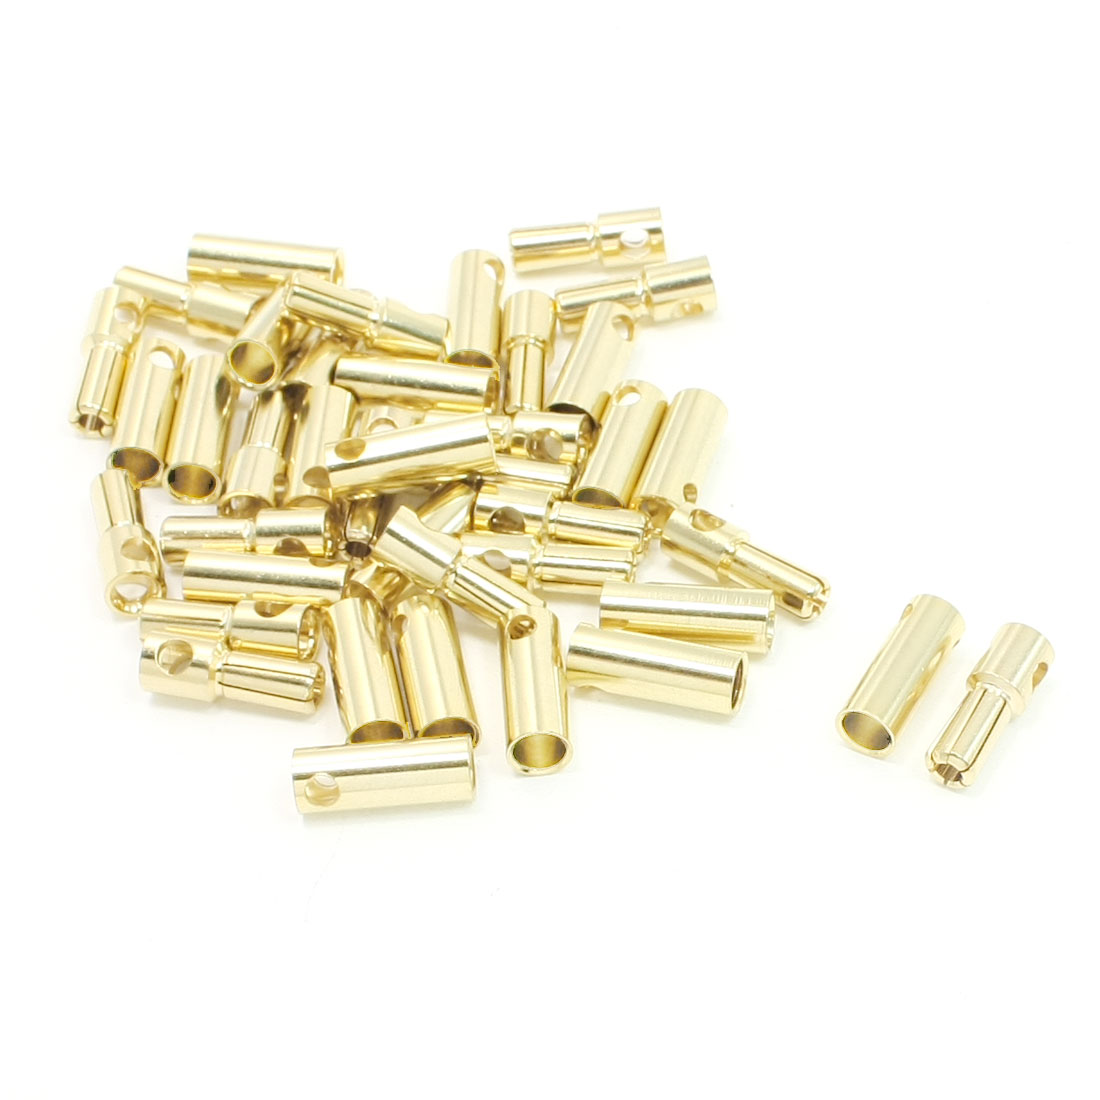 20 Pairs Gold Tone Metal Audio Video Terminal Female Male Connectors 5.5mm Dia